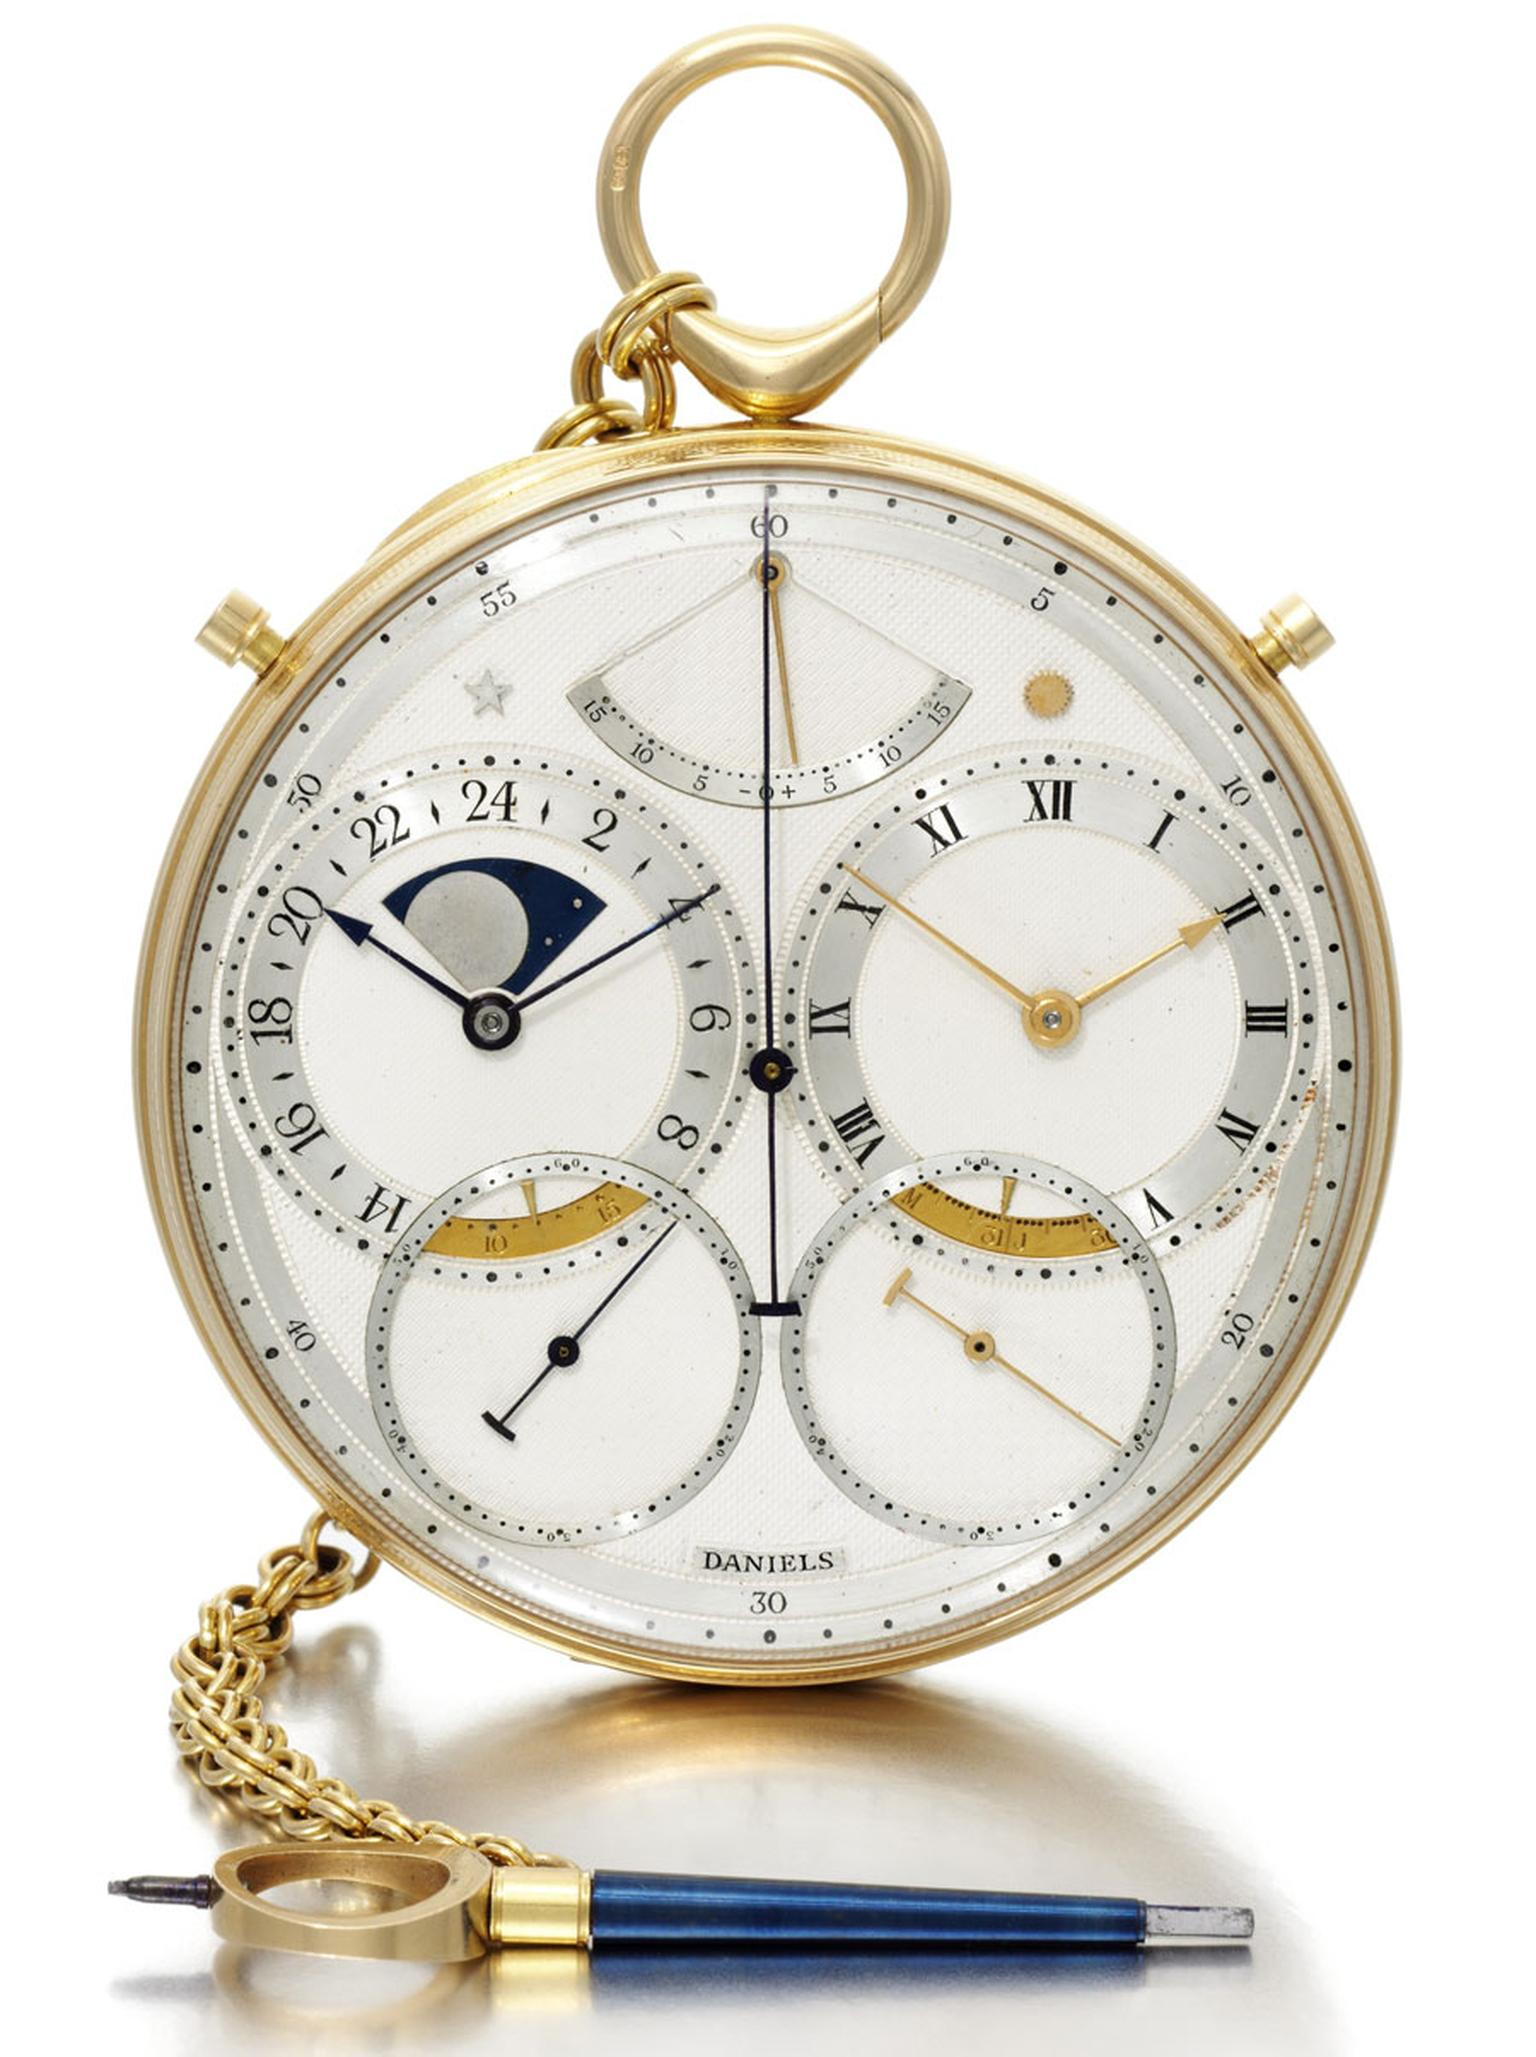 George Daniels 18K YELLOW GOLD CHRONOGRAPH WITH DANIELS INDEPENDENT DOUBLE-WHEEL ESCAPEMENT